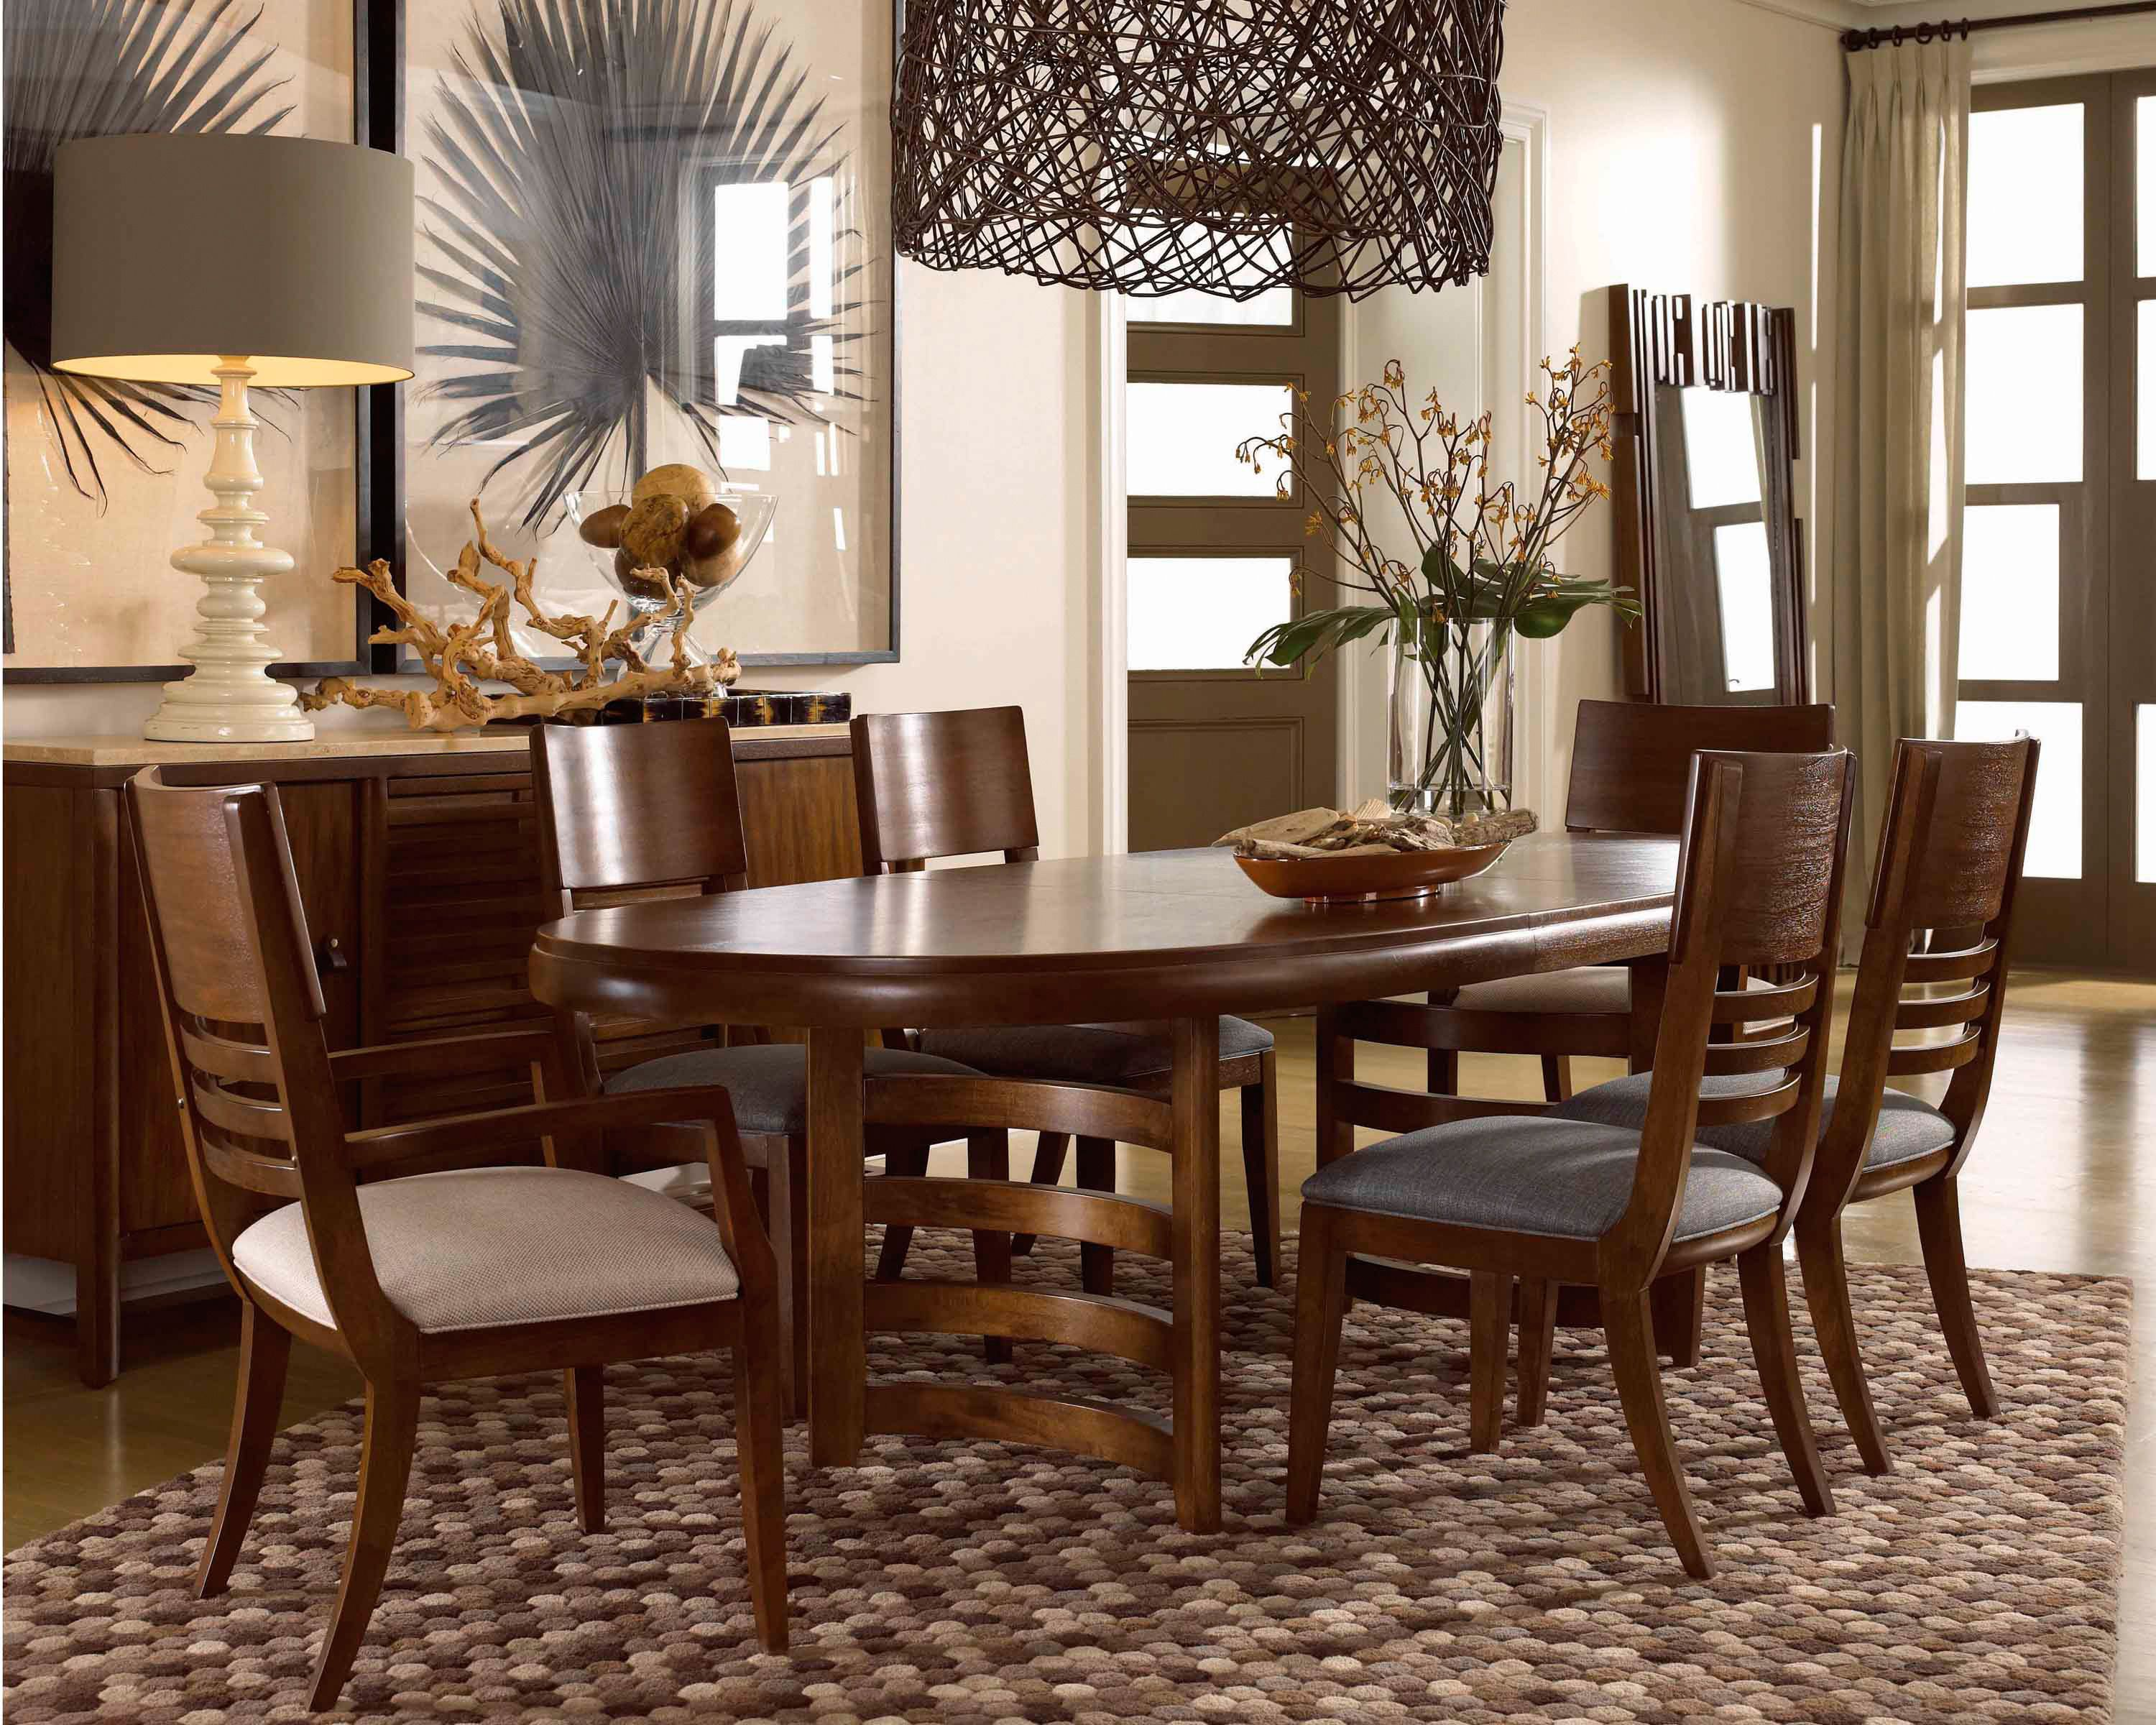 Find The Latest Drexel Heritage Furniture Styles At Heritage House Home Interiors Pinellas P Dining Room Furniture Dining Room Makeover Modern Dining Room